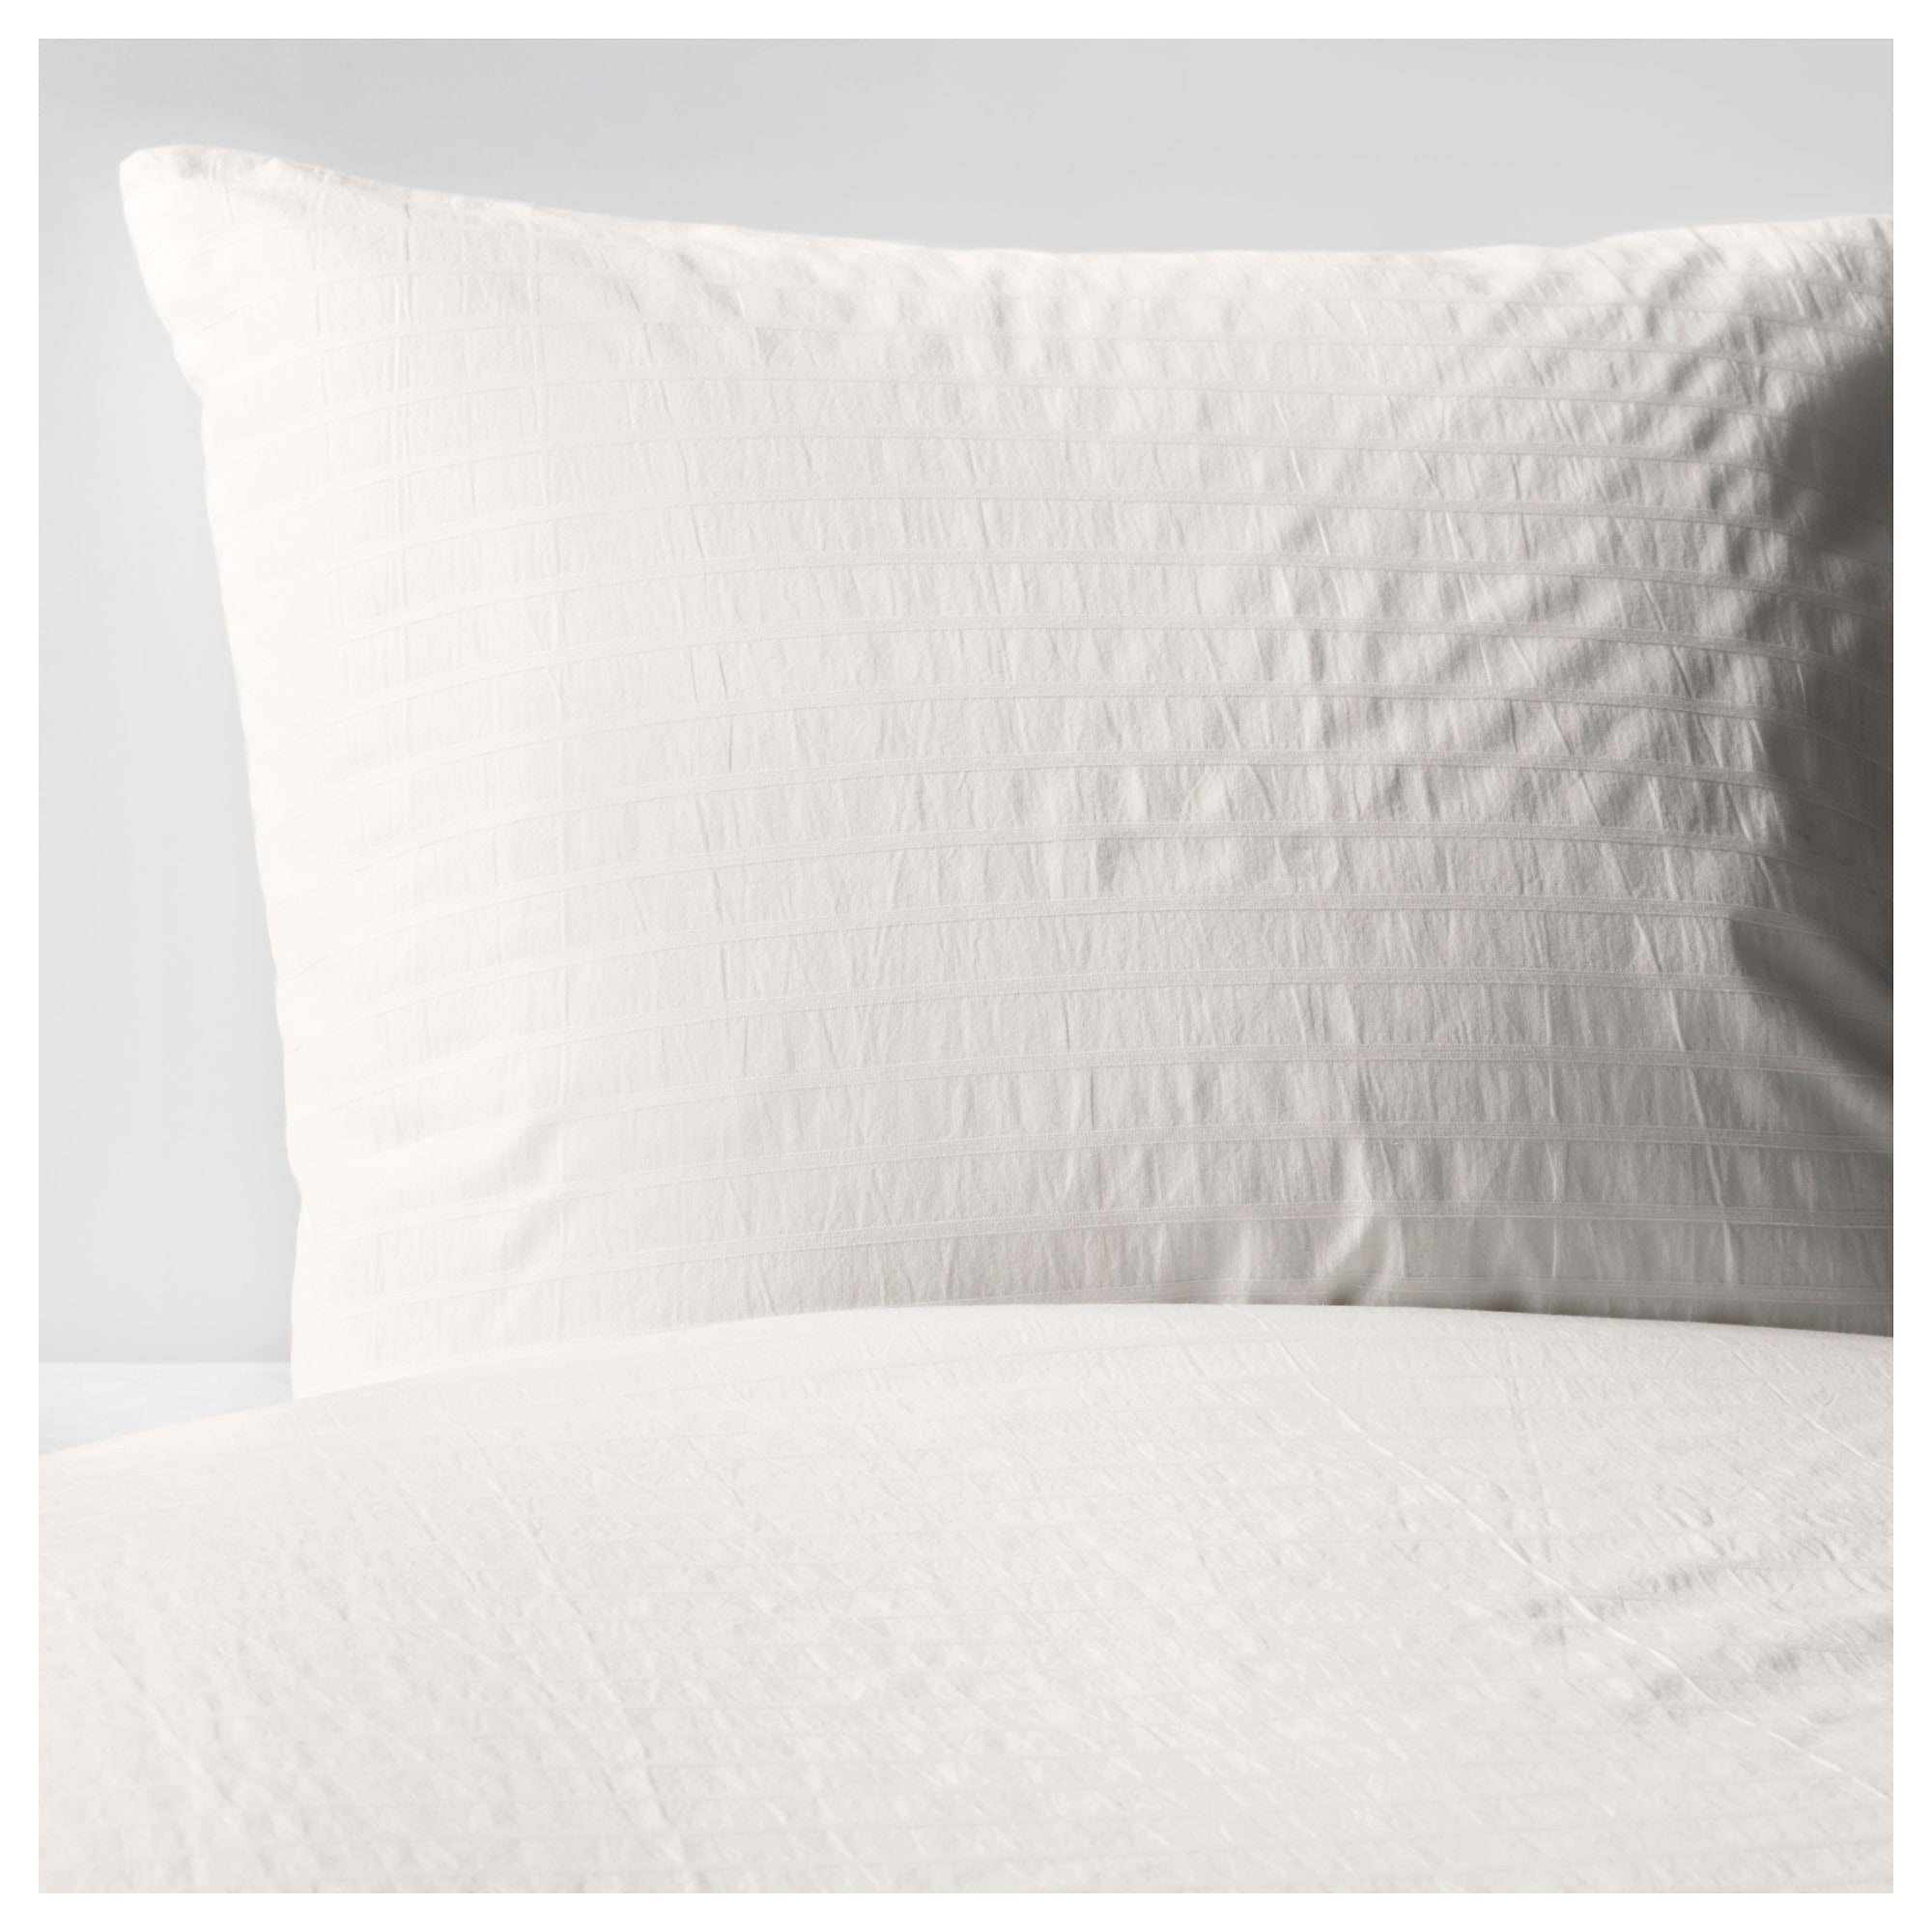 ofelia vass duvet cover and pillowcase(s)  fullqueen (double  - inter ikea systems bv     privacy policy